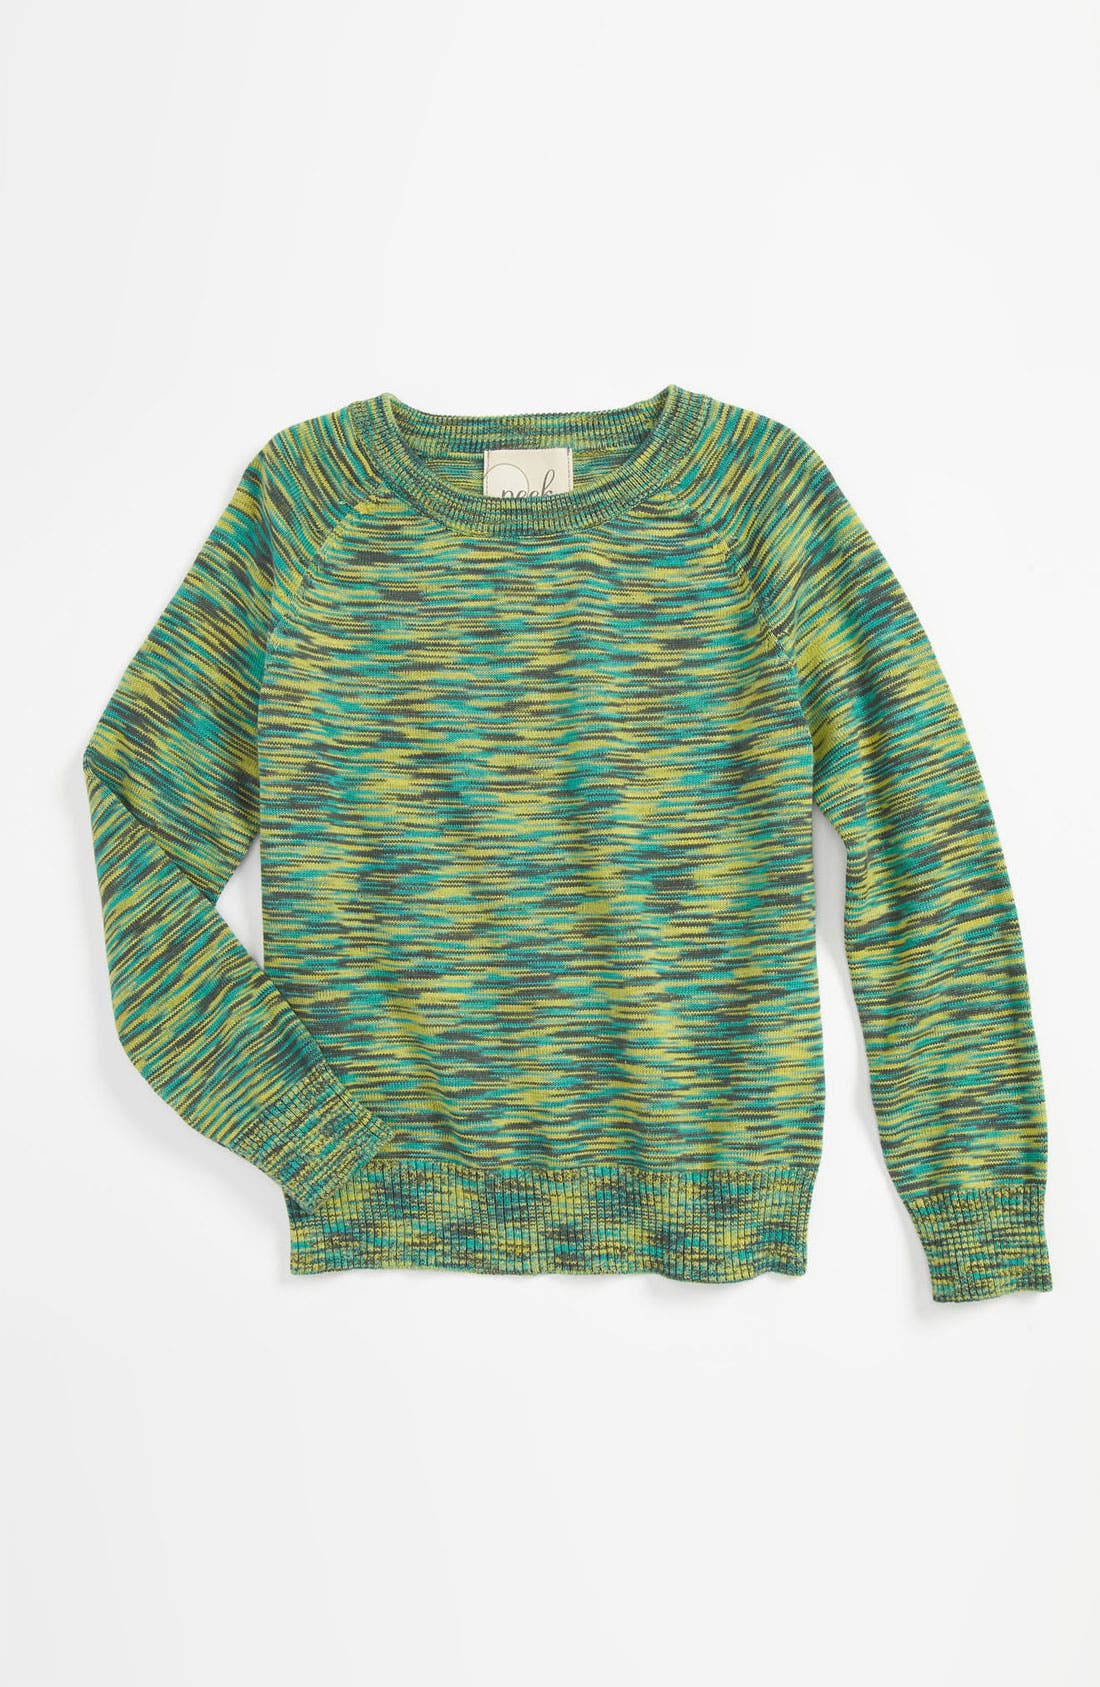 Alternate Image 1 Selected - Peek 'Susana' Crewneck Sweater (Toddler, Little Girls & Big Girls)